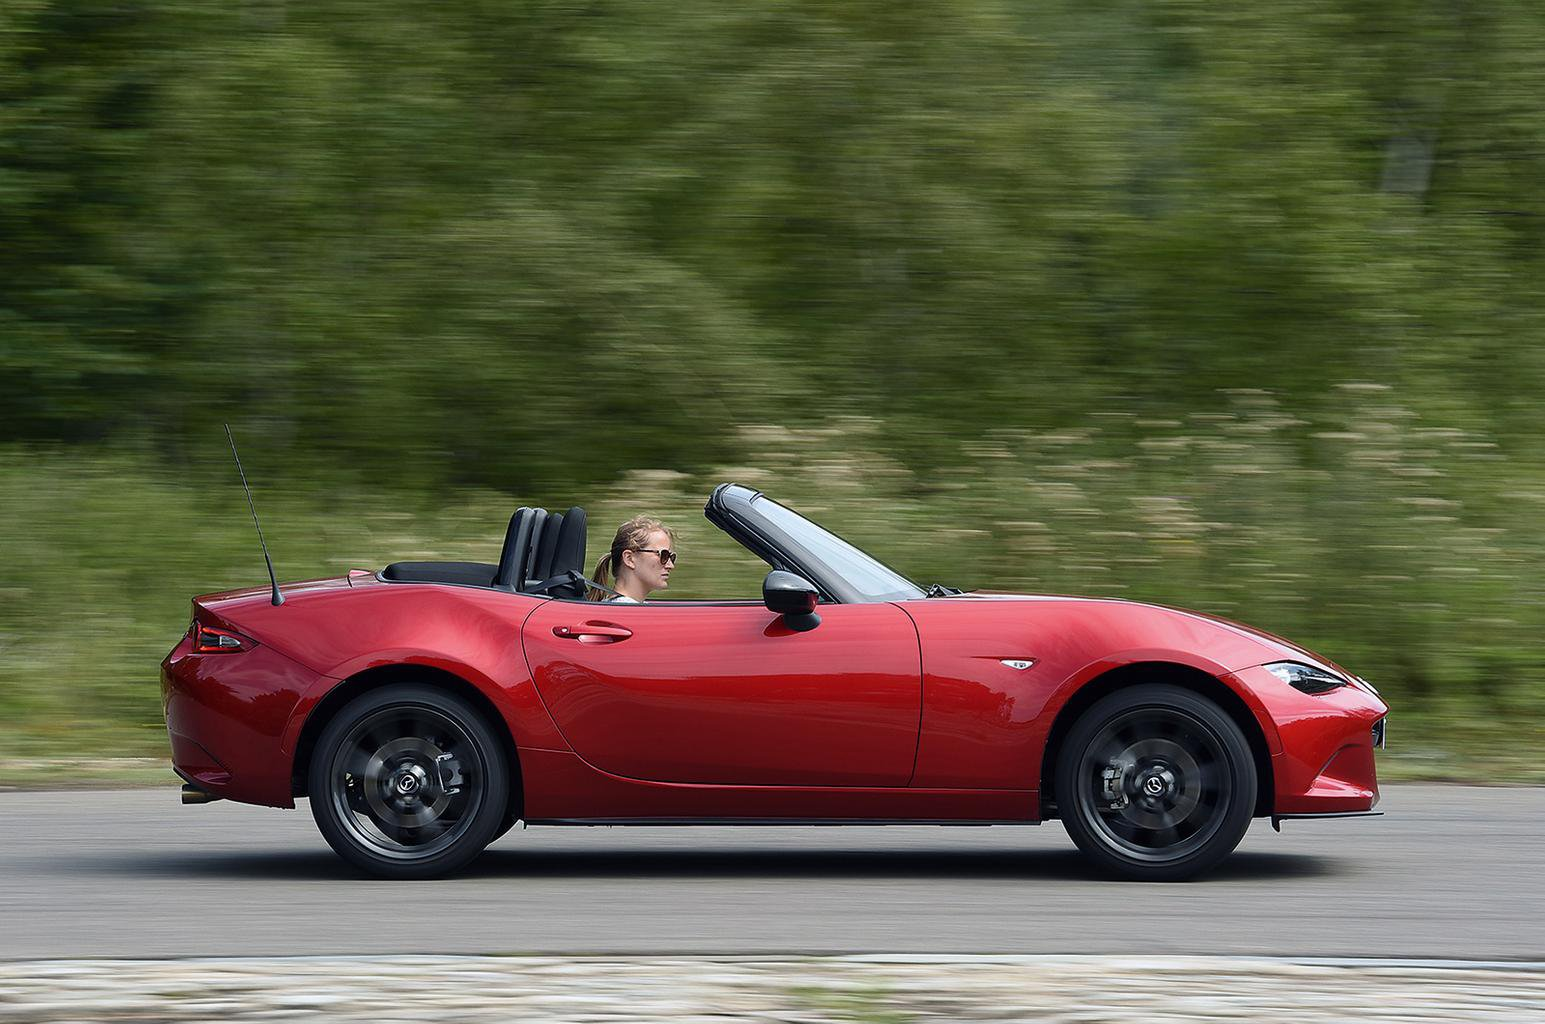 Used Mazda MX-5 Open (15-present)